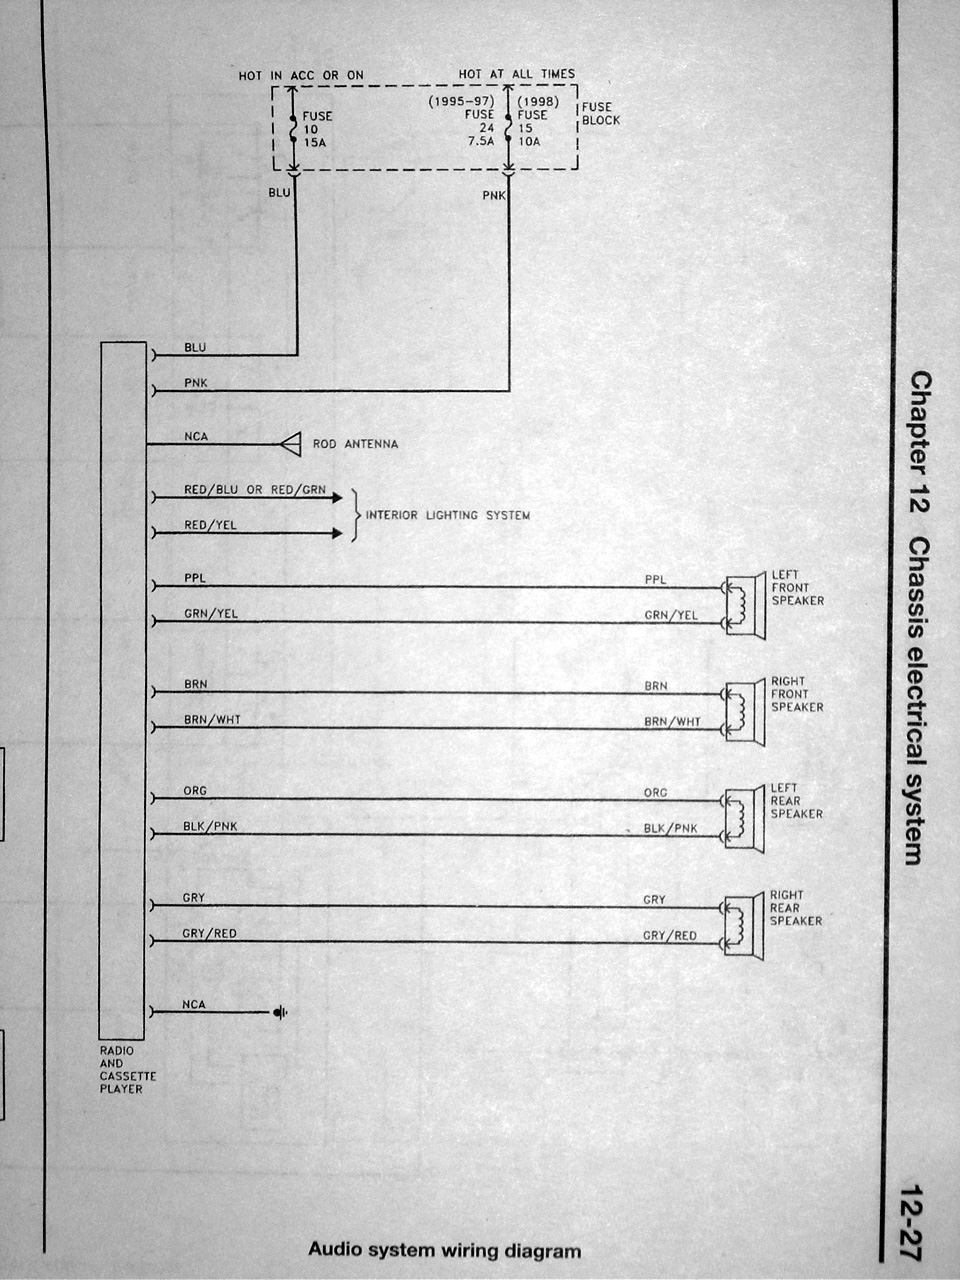 DSC01849?resize=665%2C887 poor mans ipod connector for 2005 altima bose nissan forums 1998 nissan altima o2 sensor wiring diagram at edmiracle.co